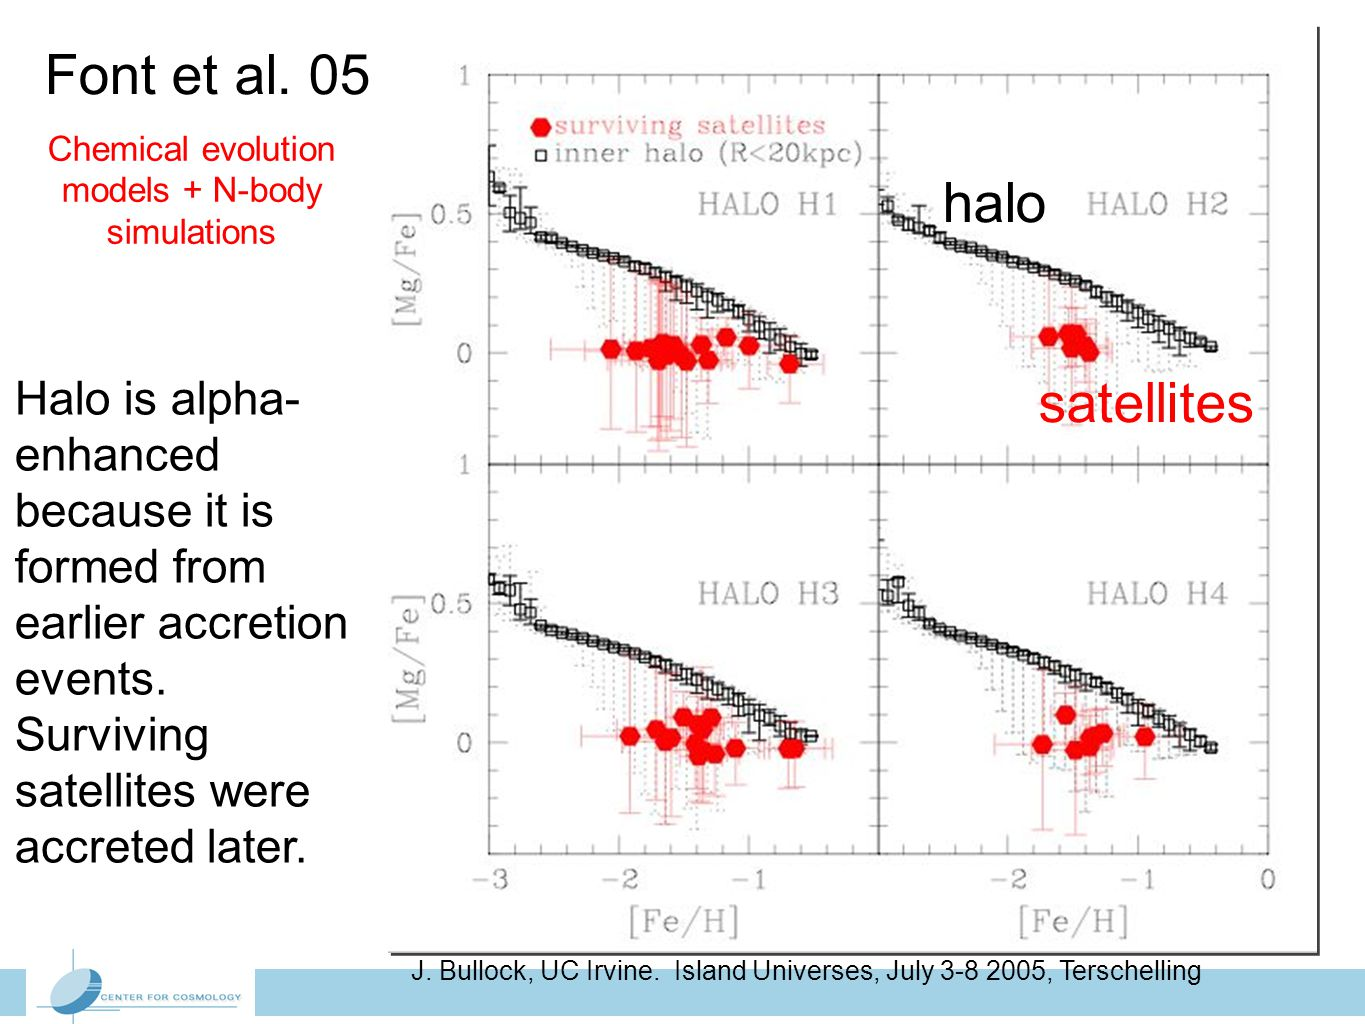 Font et al. 05 Halo is alpha- enhanced because it is formed from earlier accretion events. Surviving satellites were accreted later. Chemical evolutio